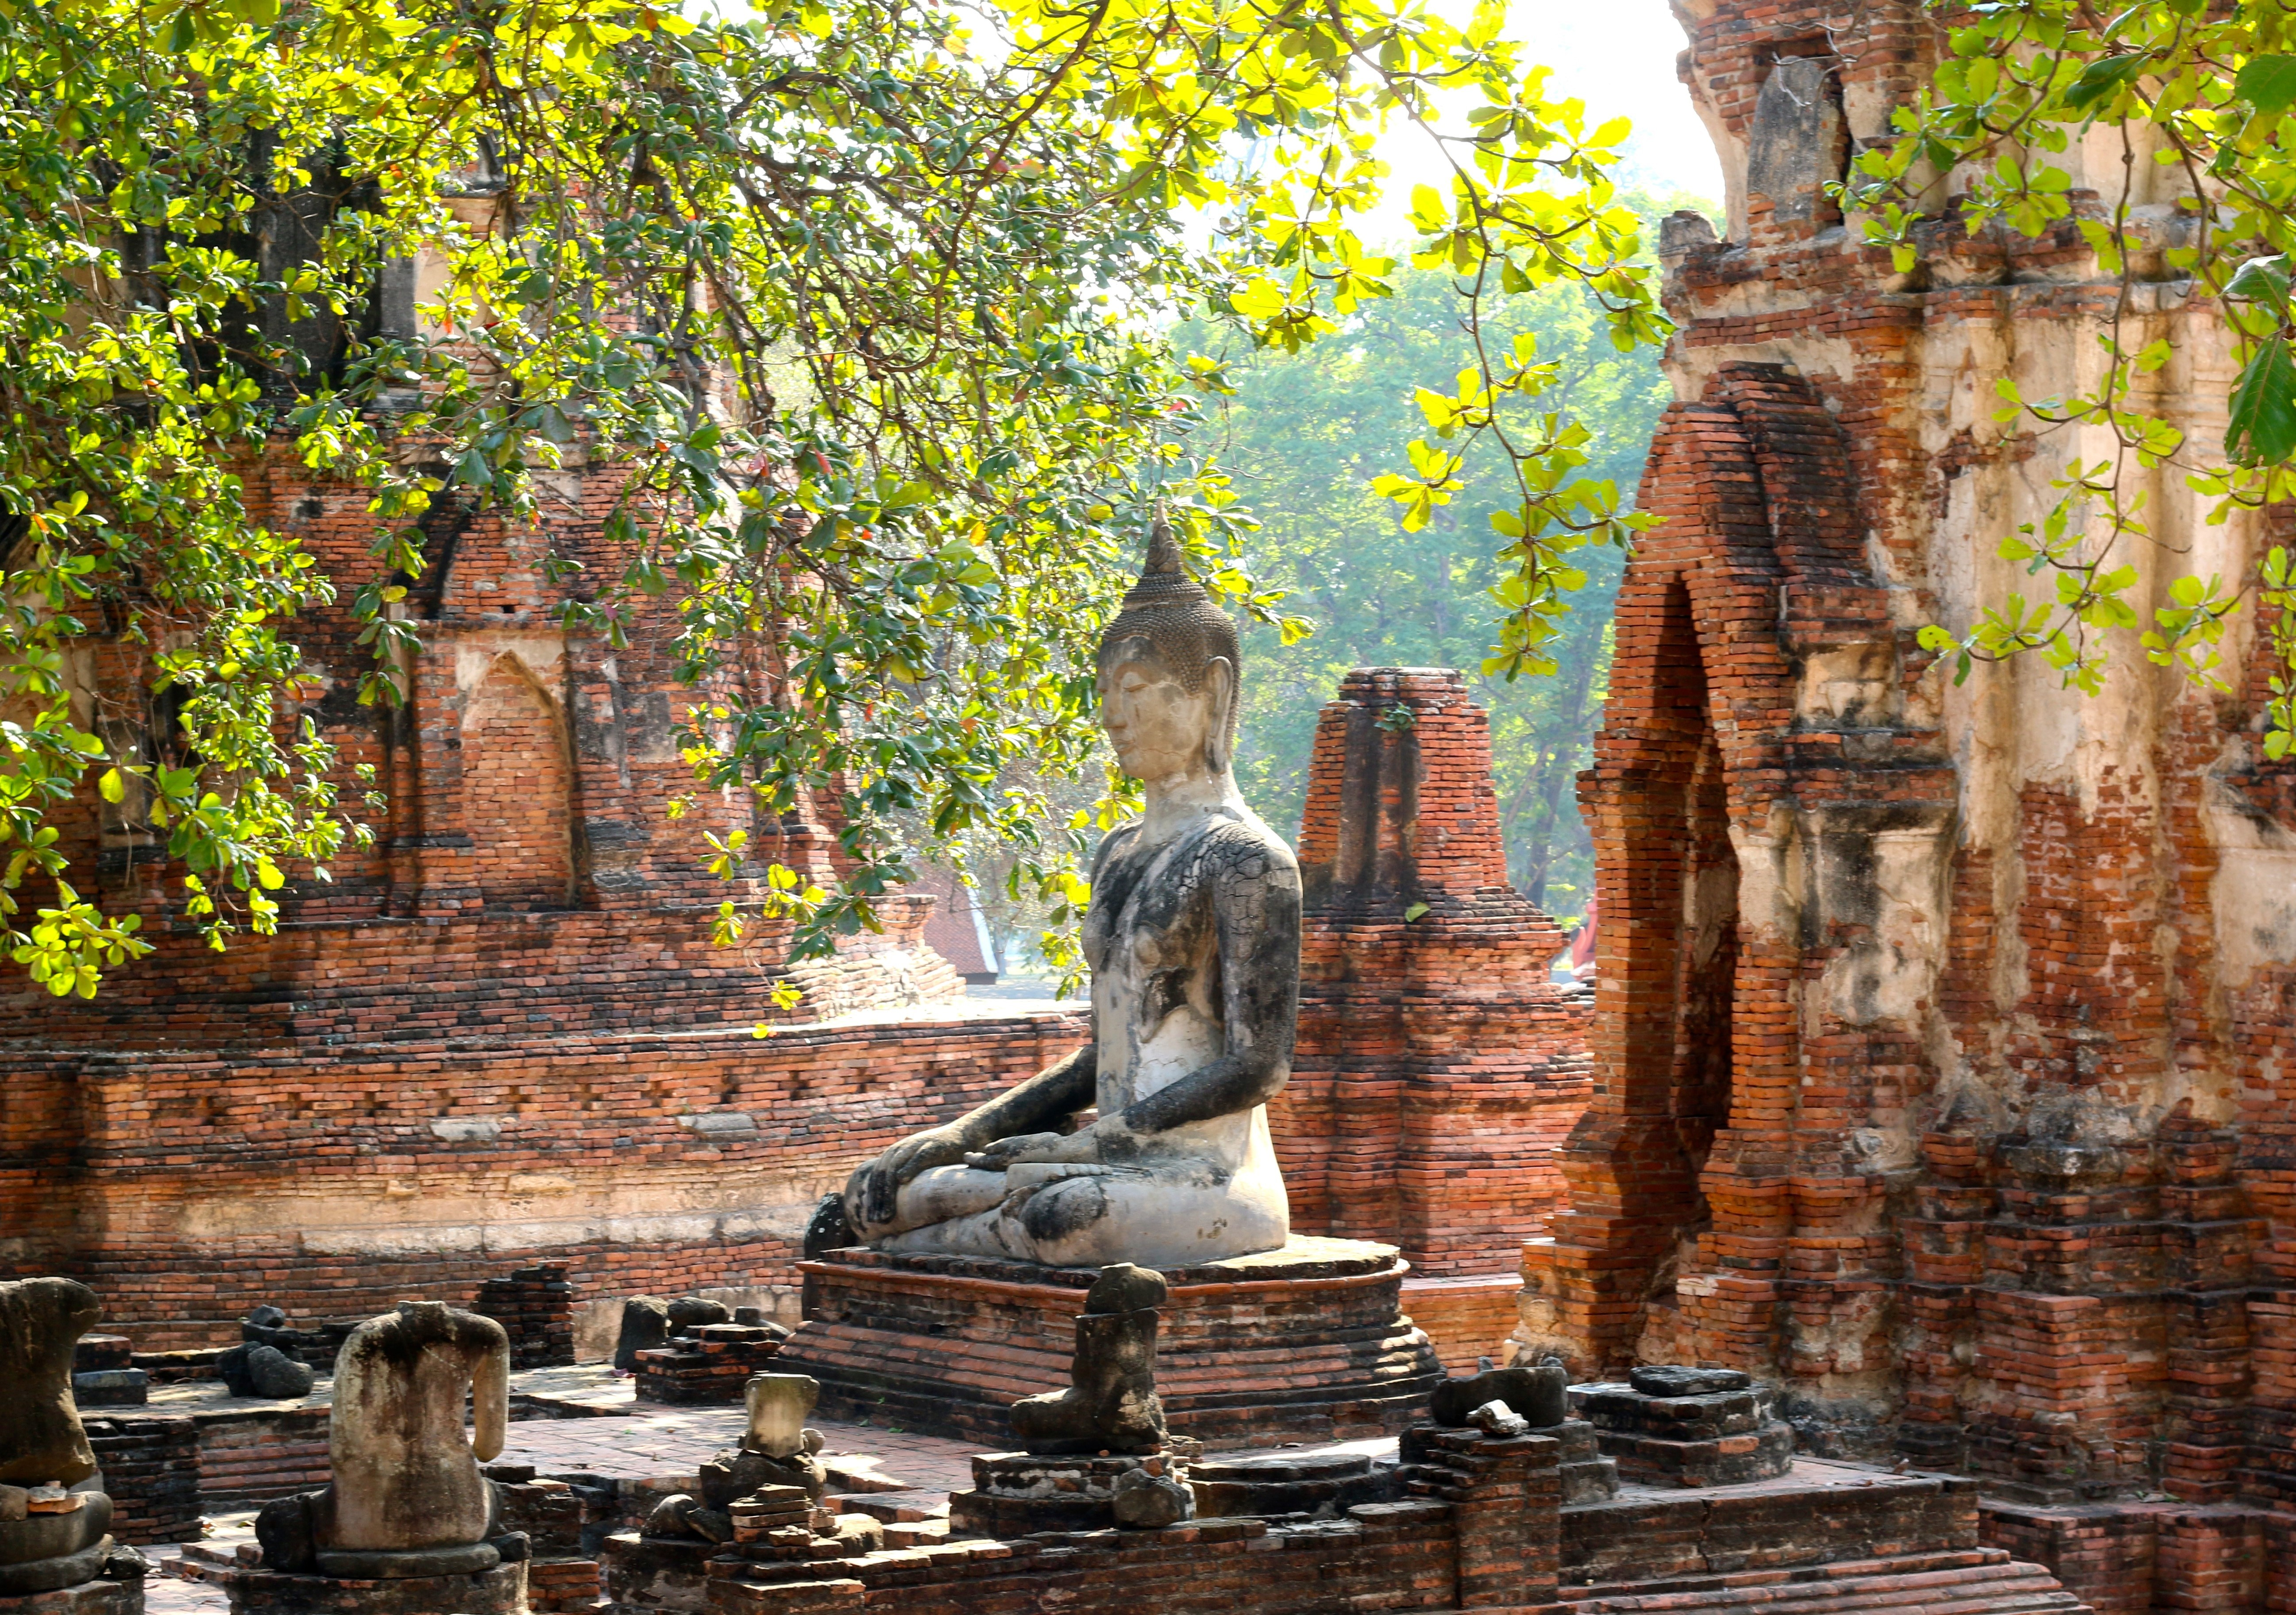 The ruins at Wat Mahathat in Ayutthaya, Thailand